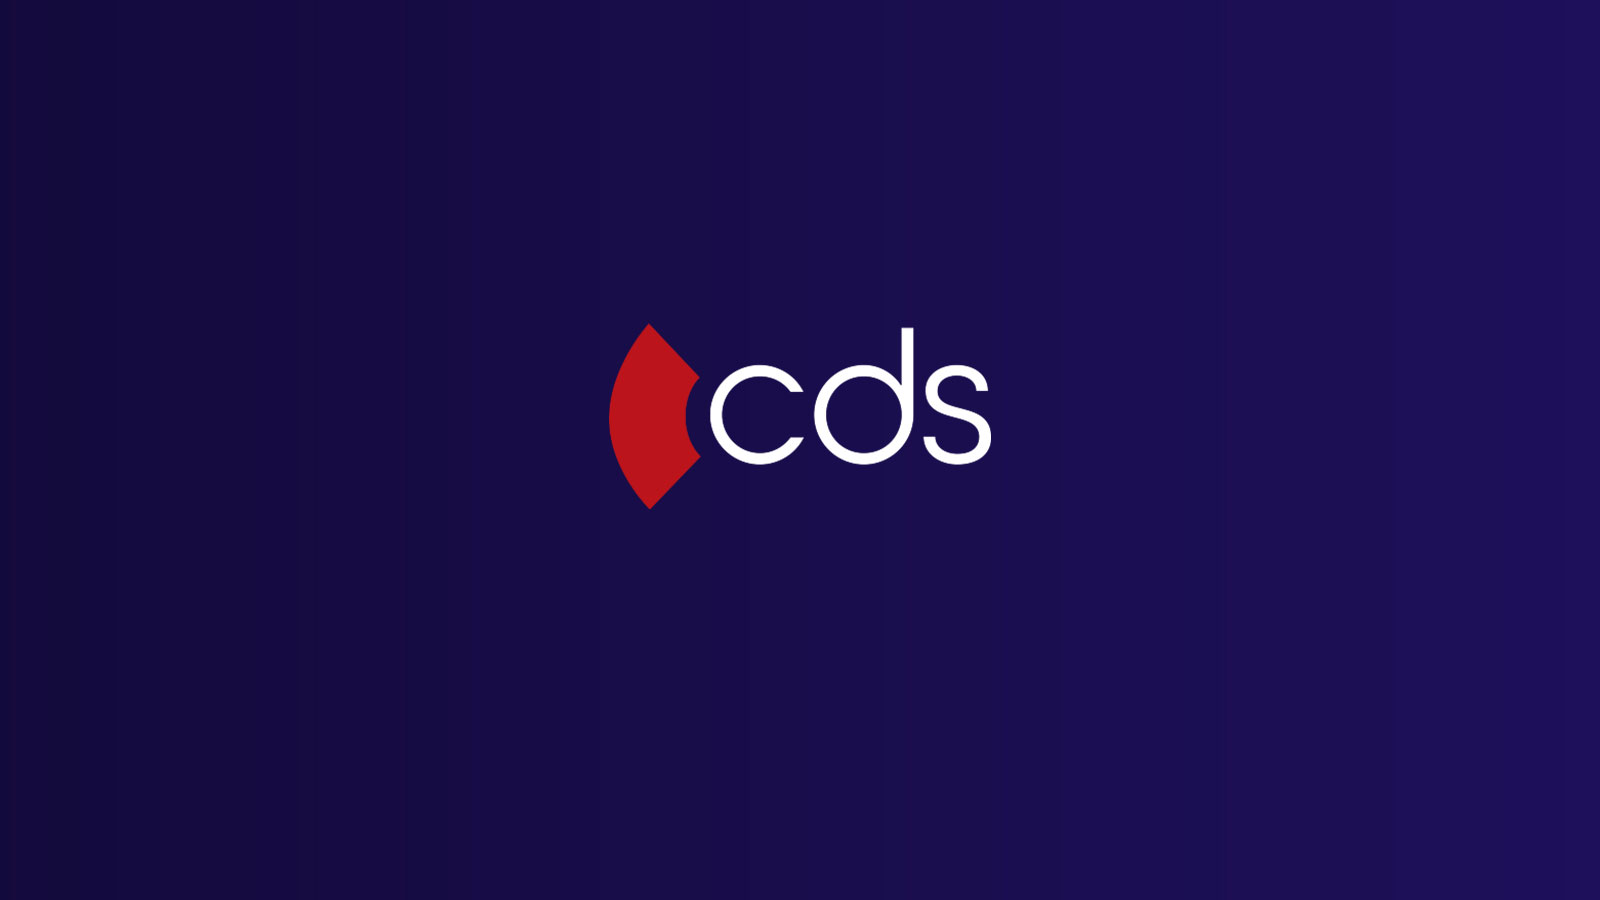 CDS rebrands and launches new look logo, website, uniform and vehicle livery